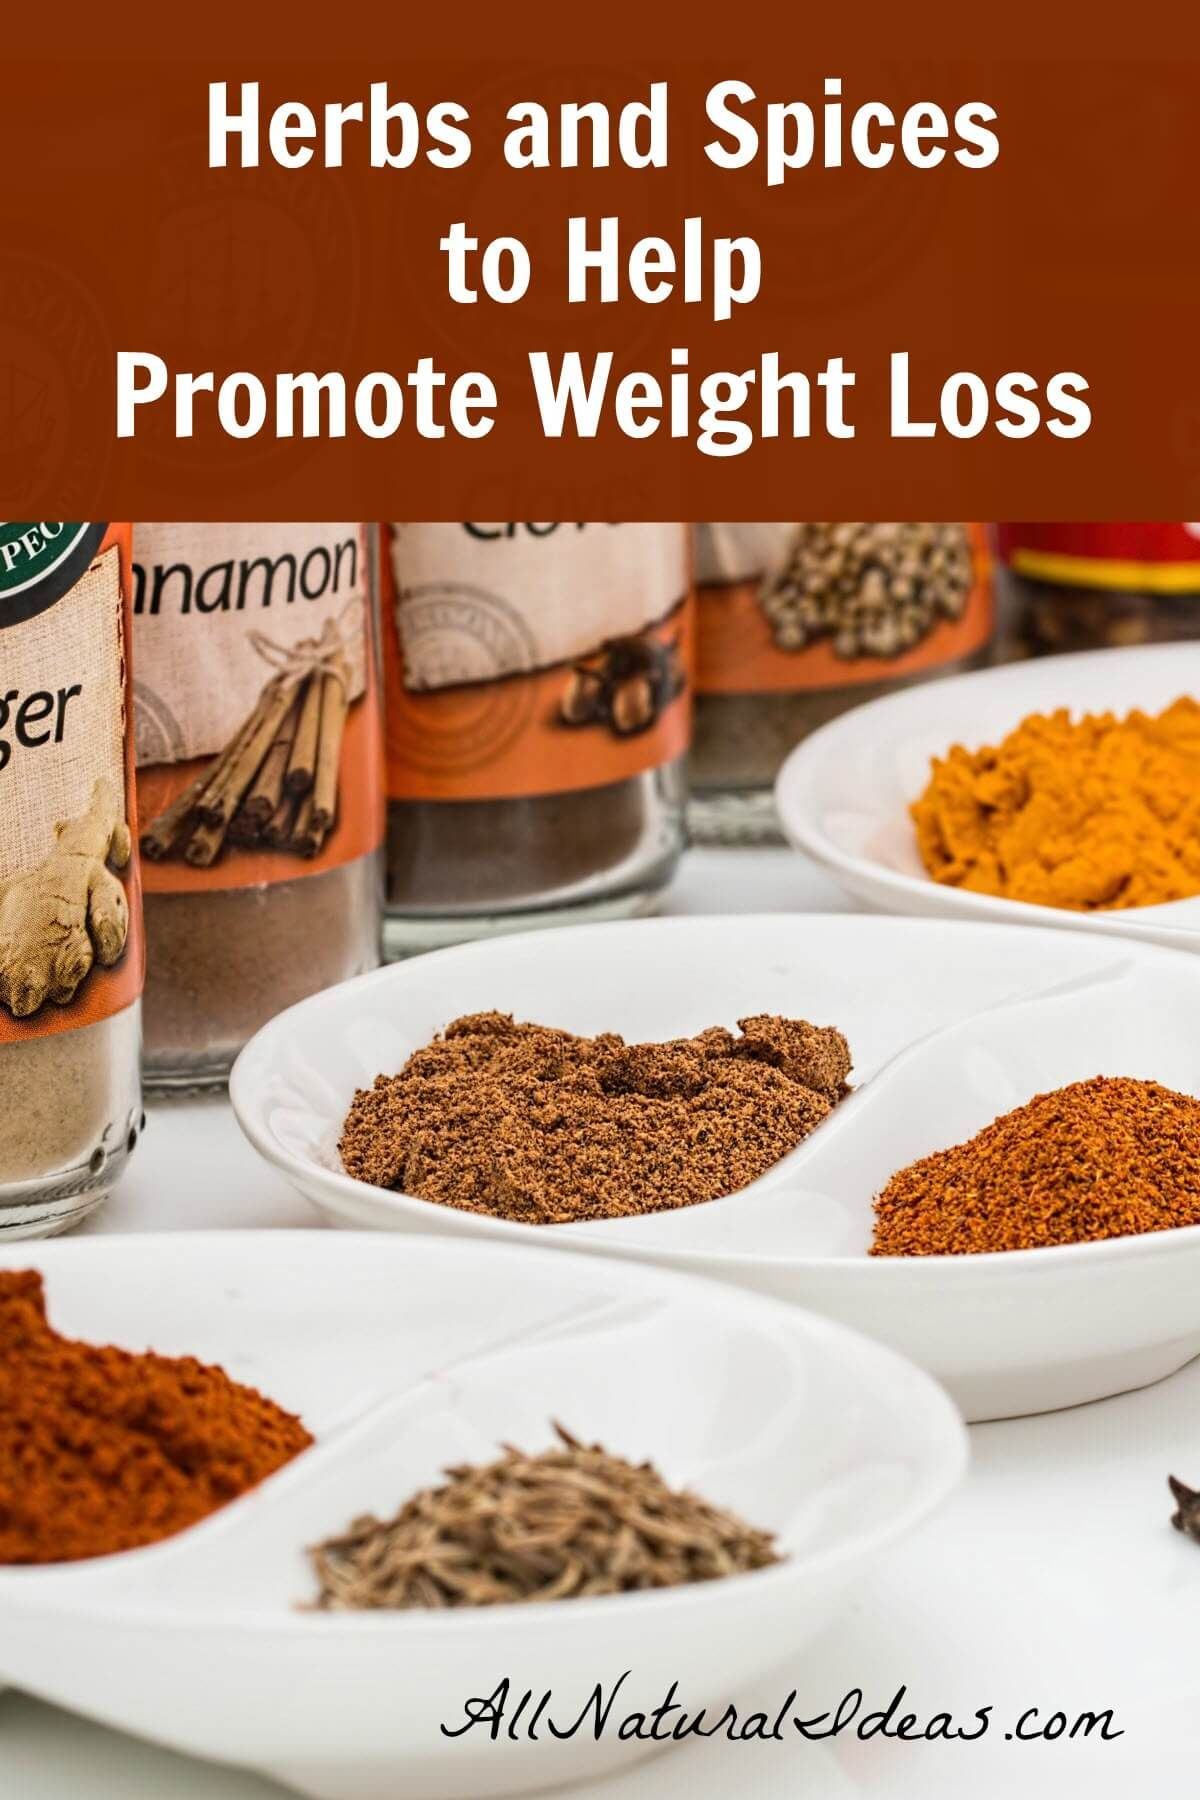 How to Eat Spices to Lose Weight, Inflammation and Oxidative Damages, but Gain Muscle